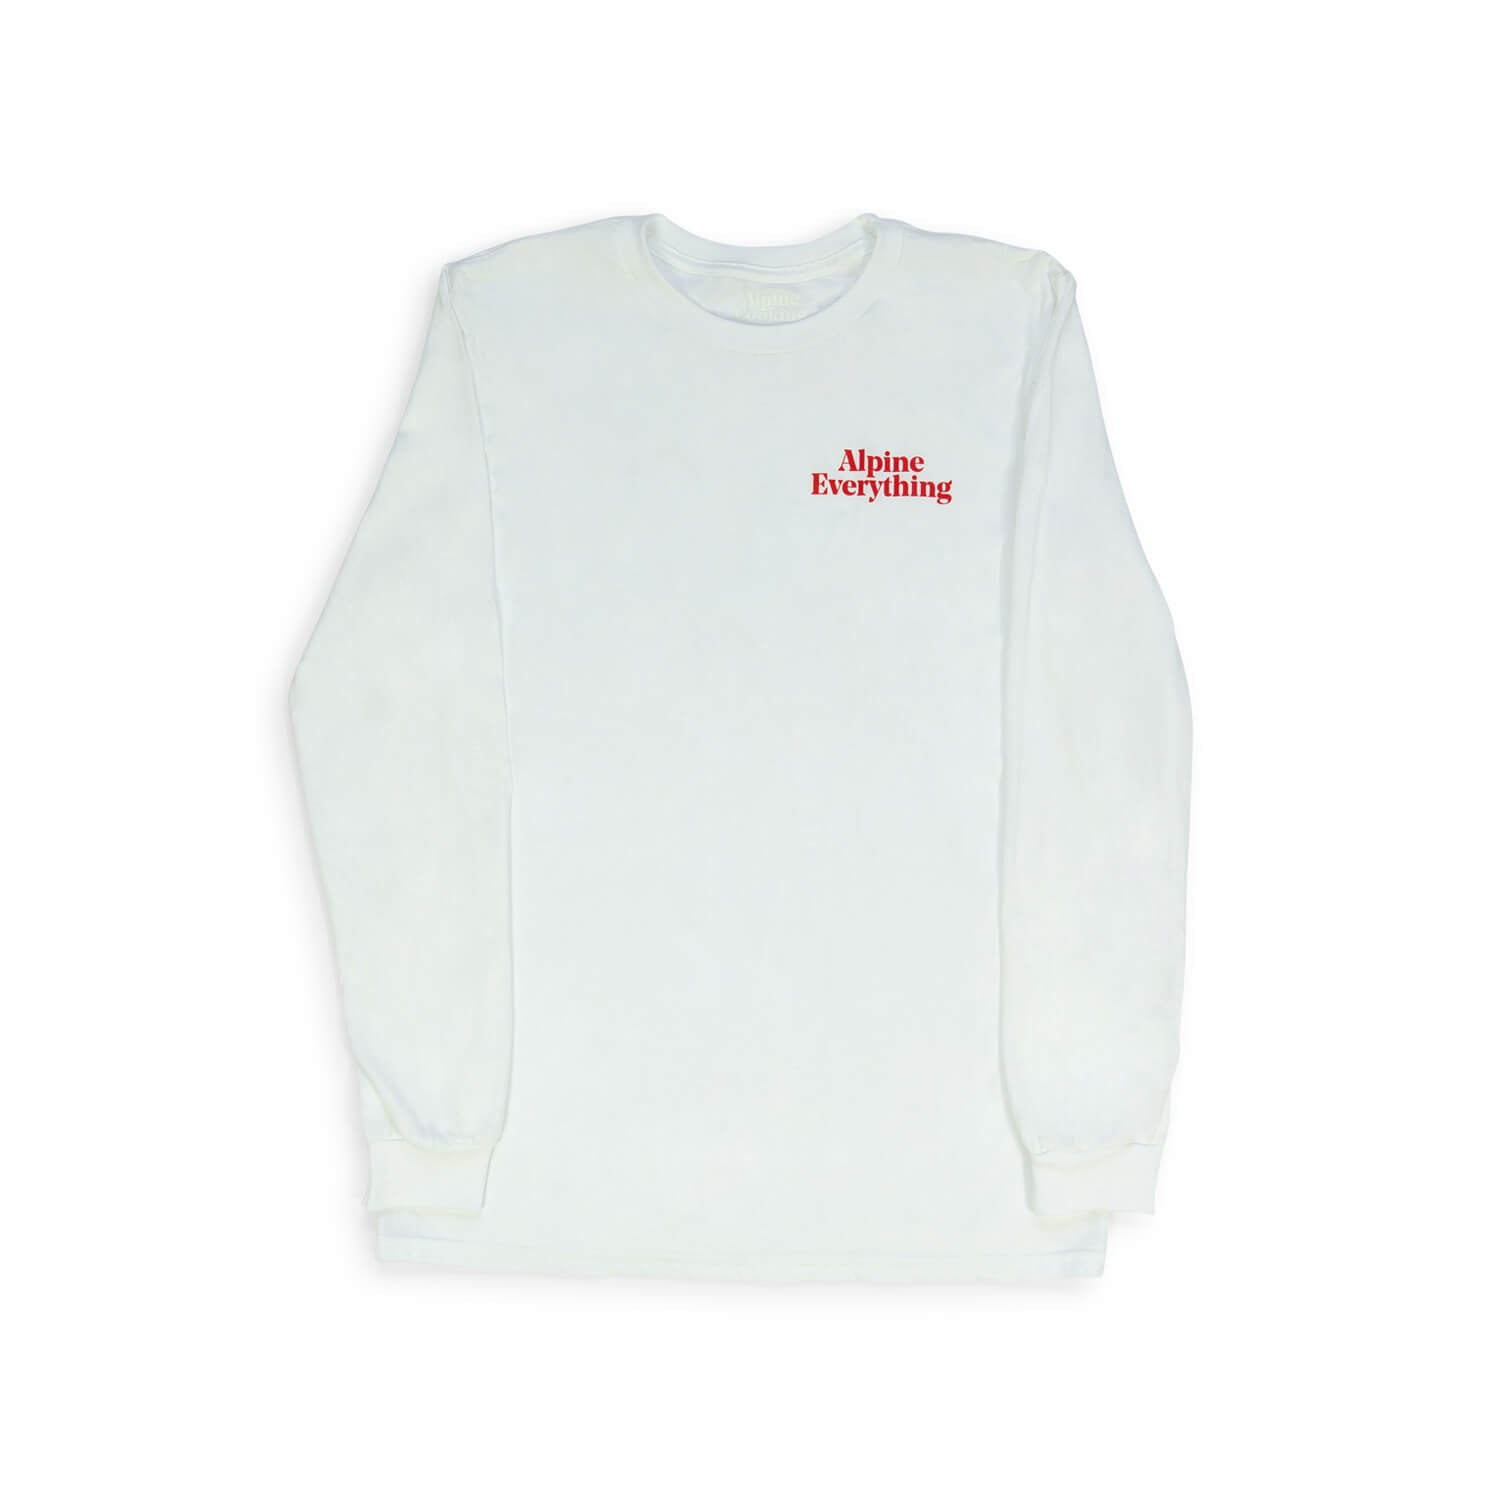 Alpine Everything Longsleeve (White)